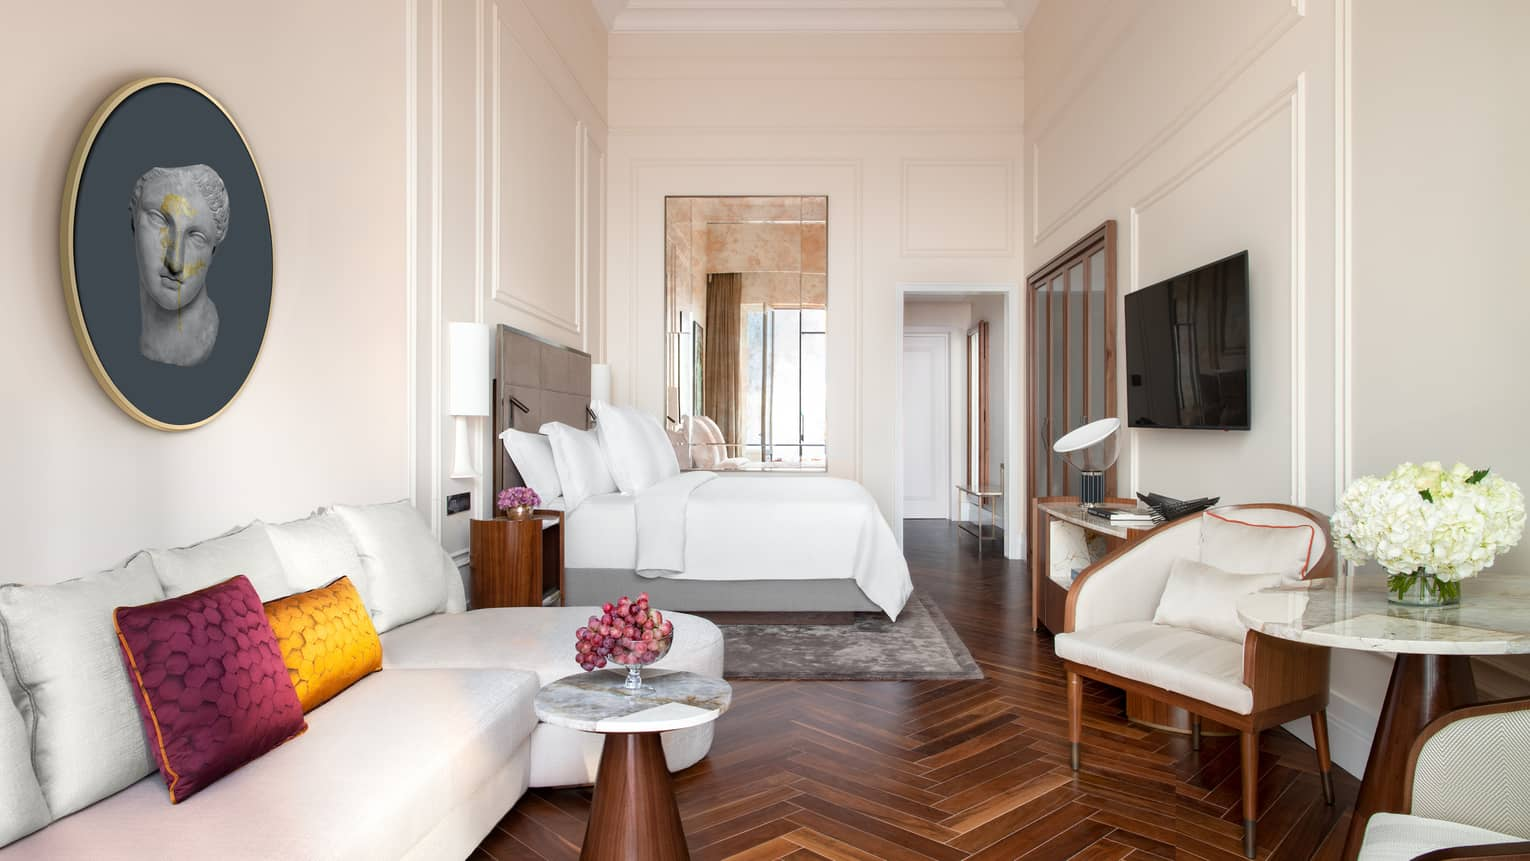 Suite with white king bed, high ceilings, wooden floors, sofa, table and two chairs